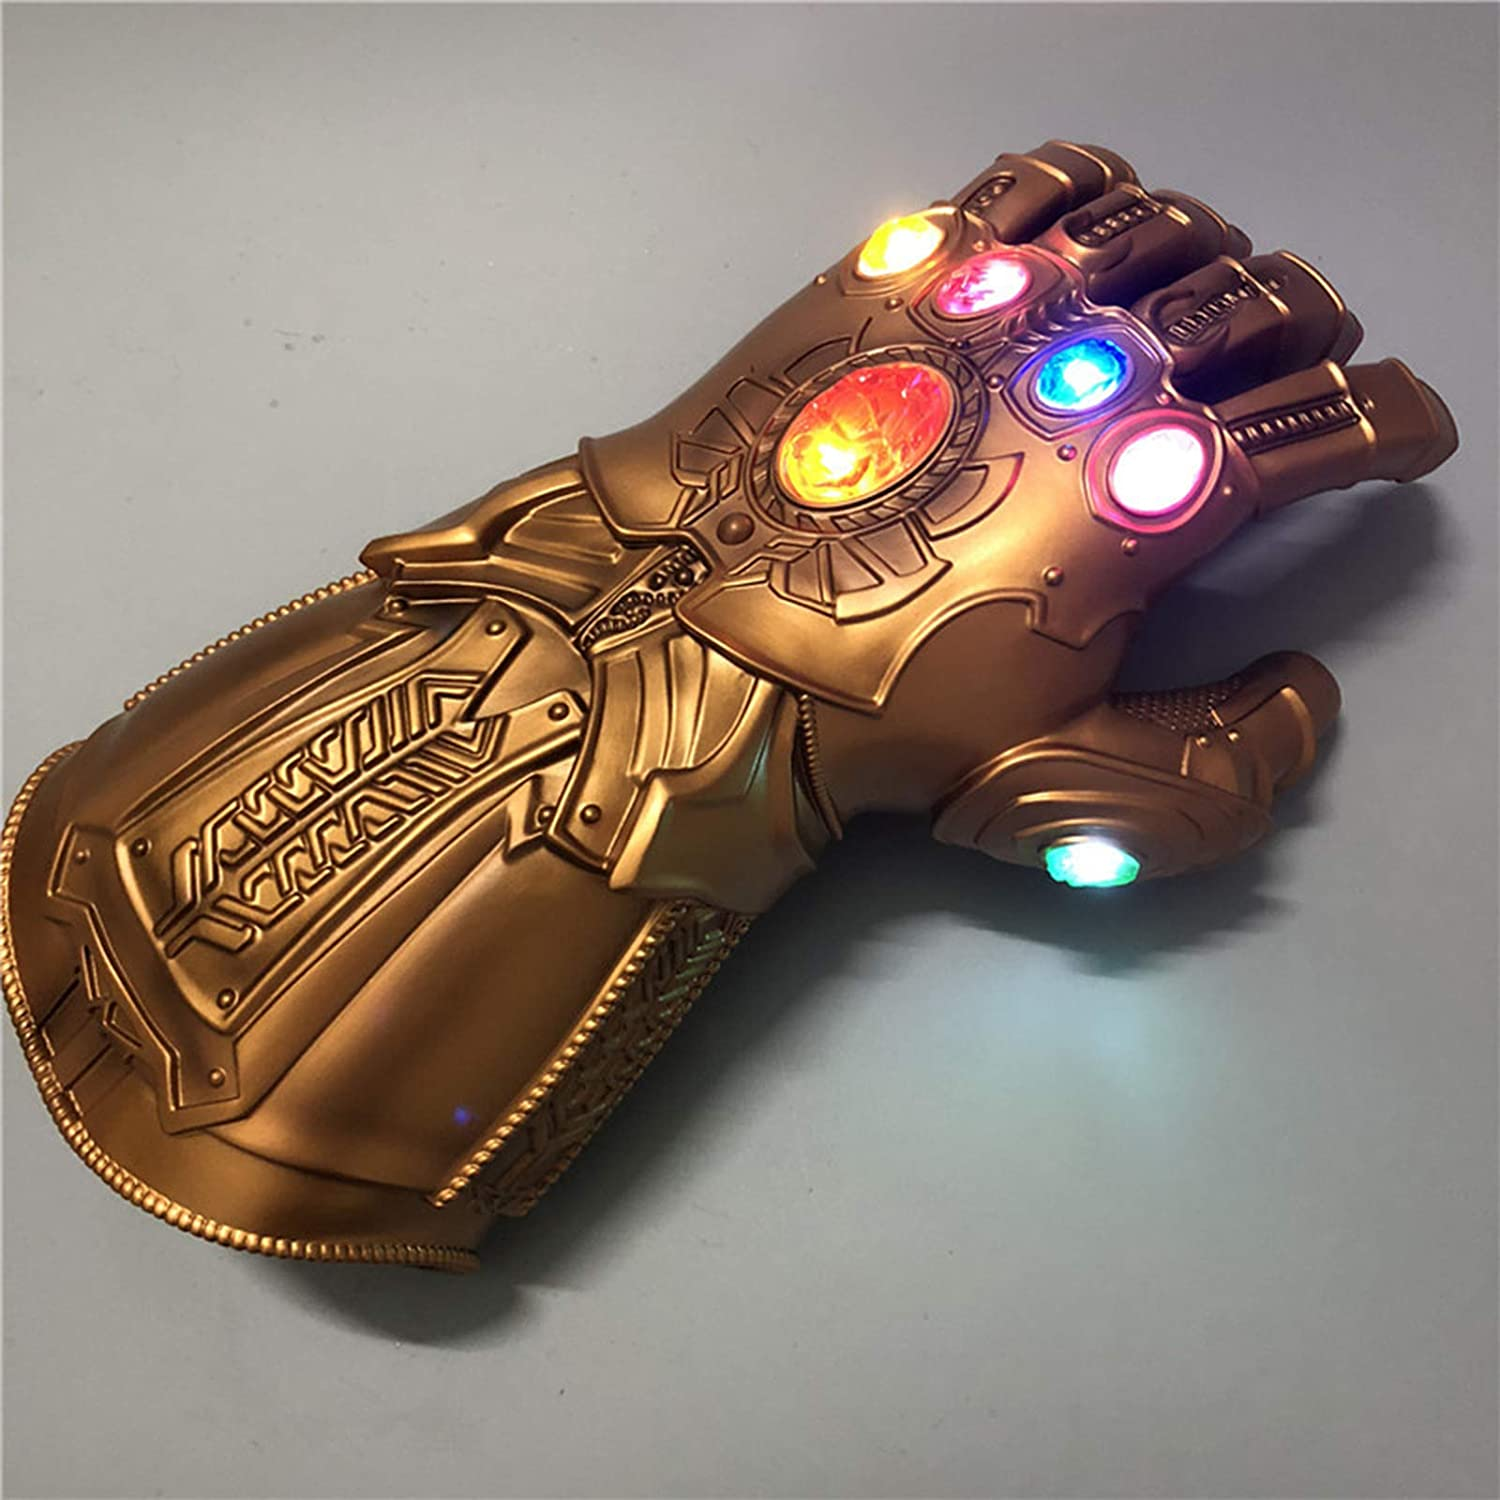 ANGXIN Tanos Luminous Infinite Gloves Cos Iron Man Glowing Gloves PVC Cosplay Superhero Props Play Gants pour Enfants Jouet,Golden One Size for Adults